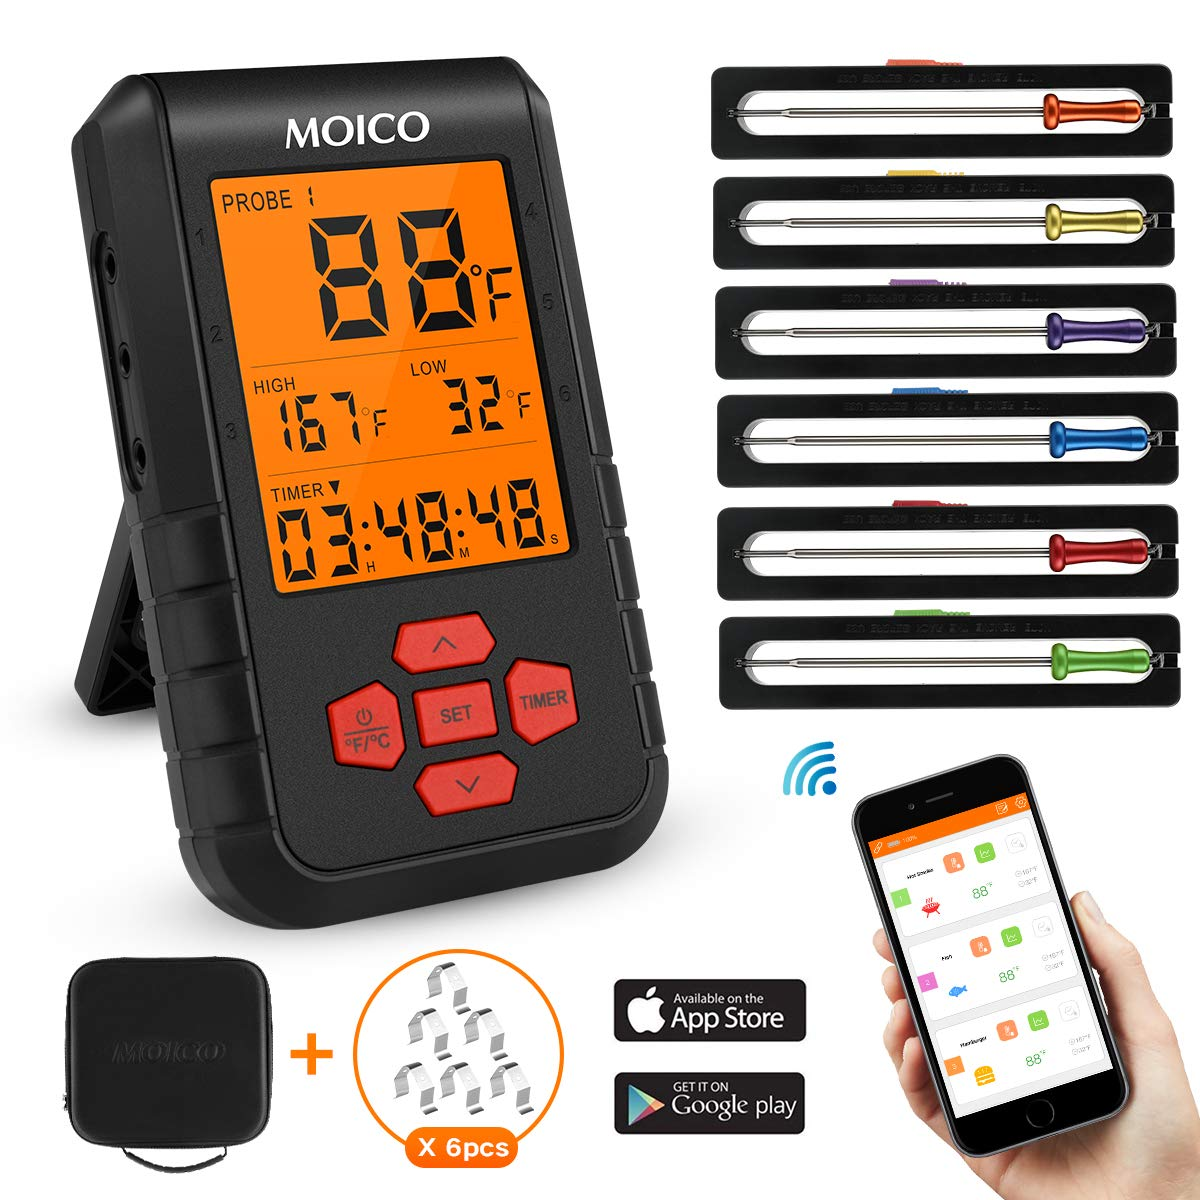 Meat Thermometer,MOICO Wireless digital cooking food thermometer,Two-way control Bluetooth thermometer with 6 Probes for Grilling BBQ Oven - Support IOS & Android,FDA approved (Carrying Case Included) by MOICO